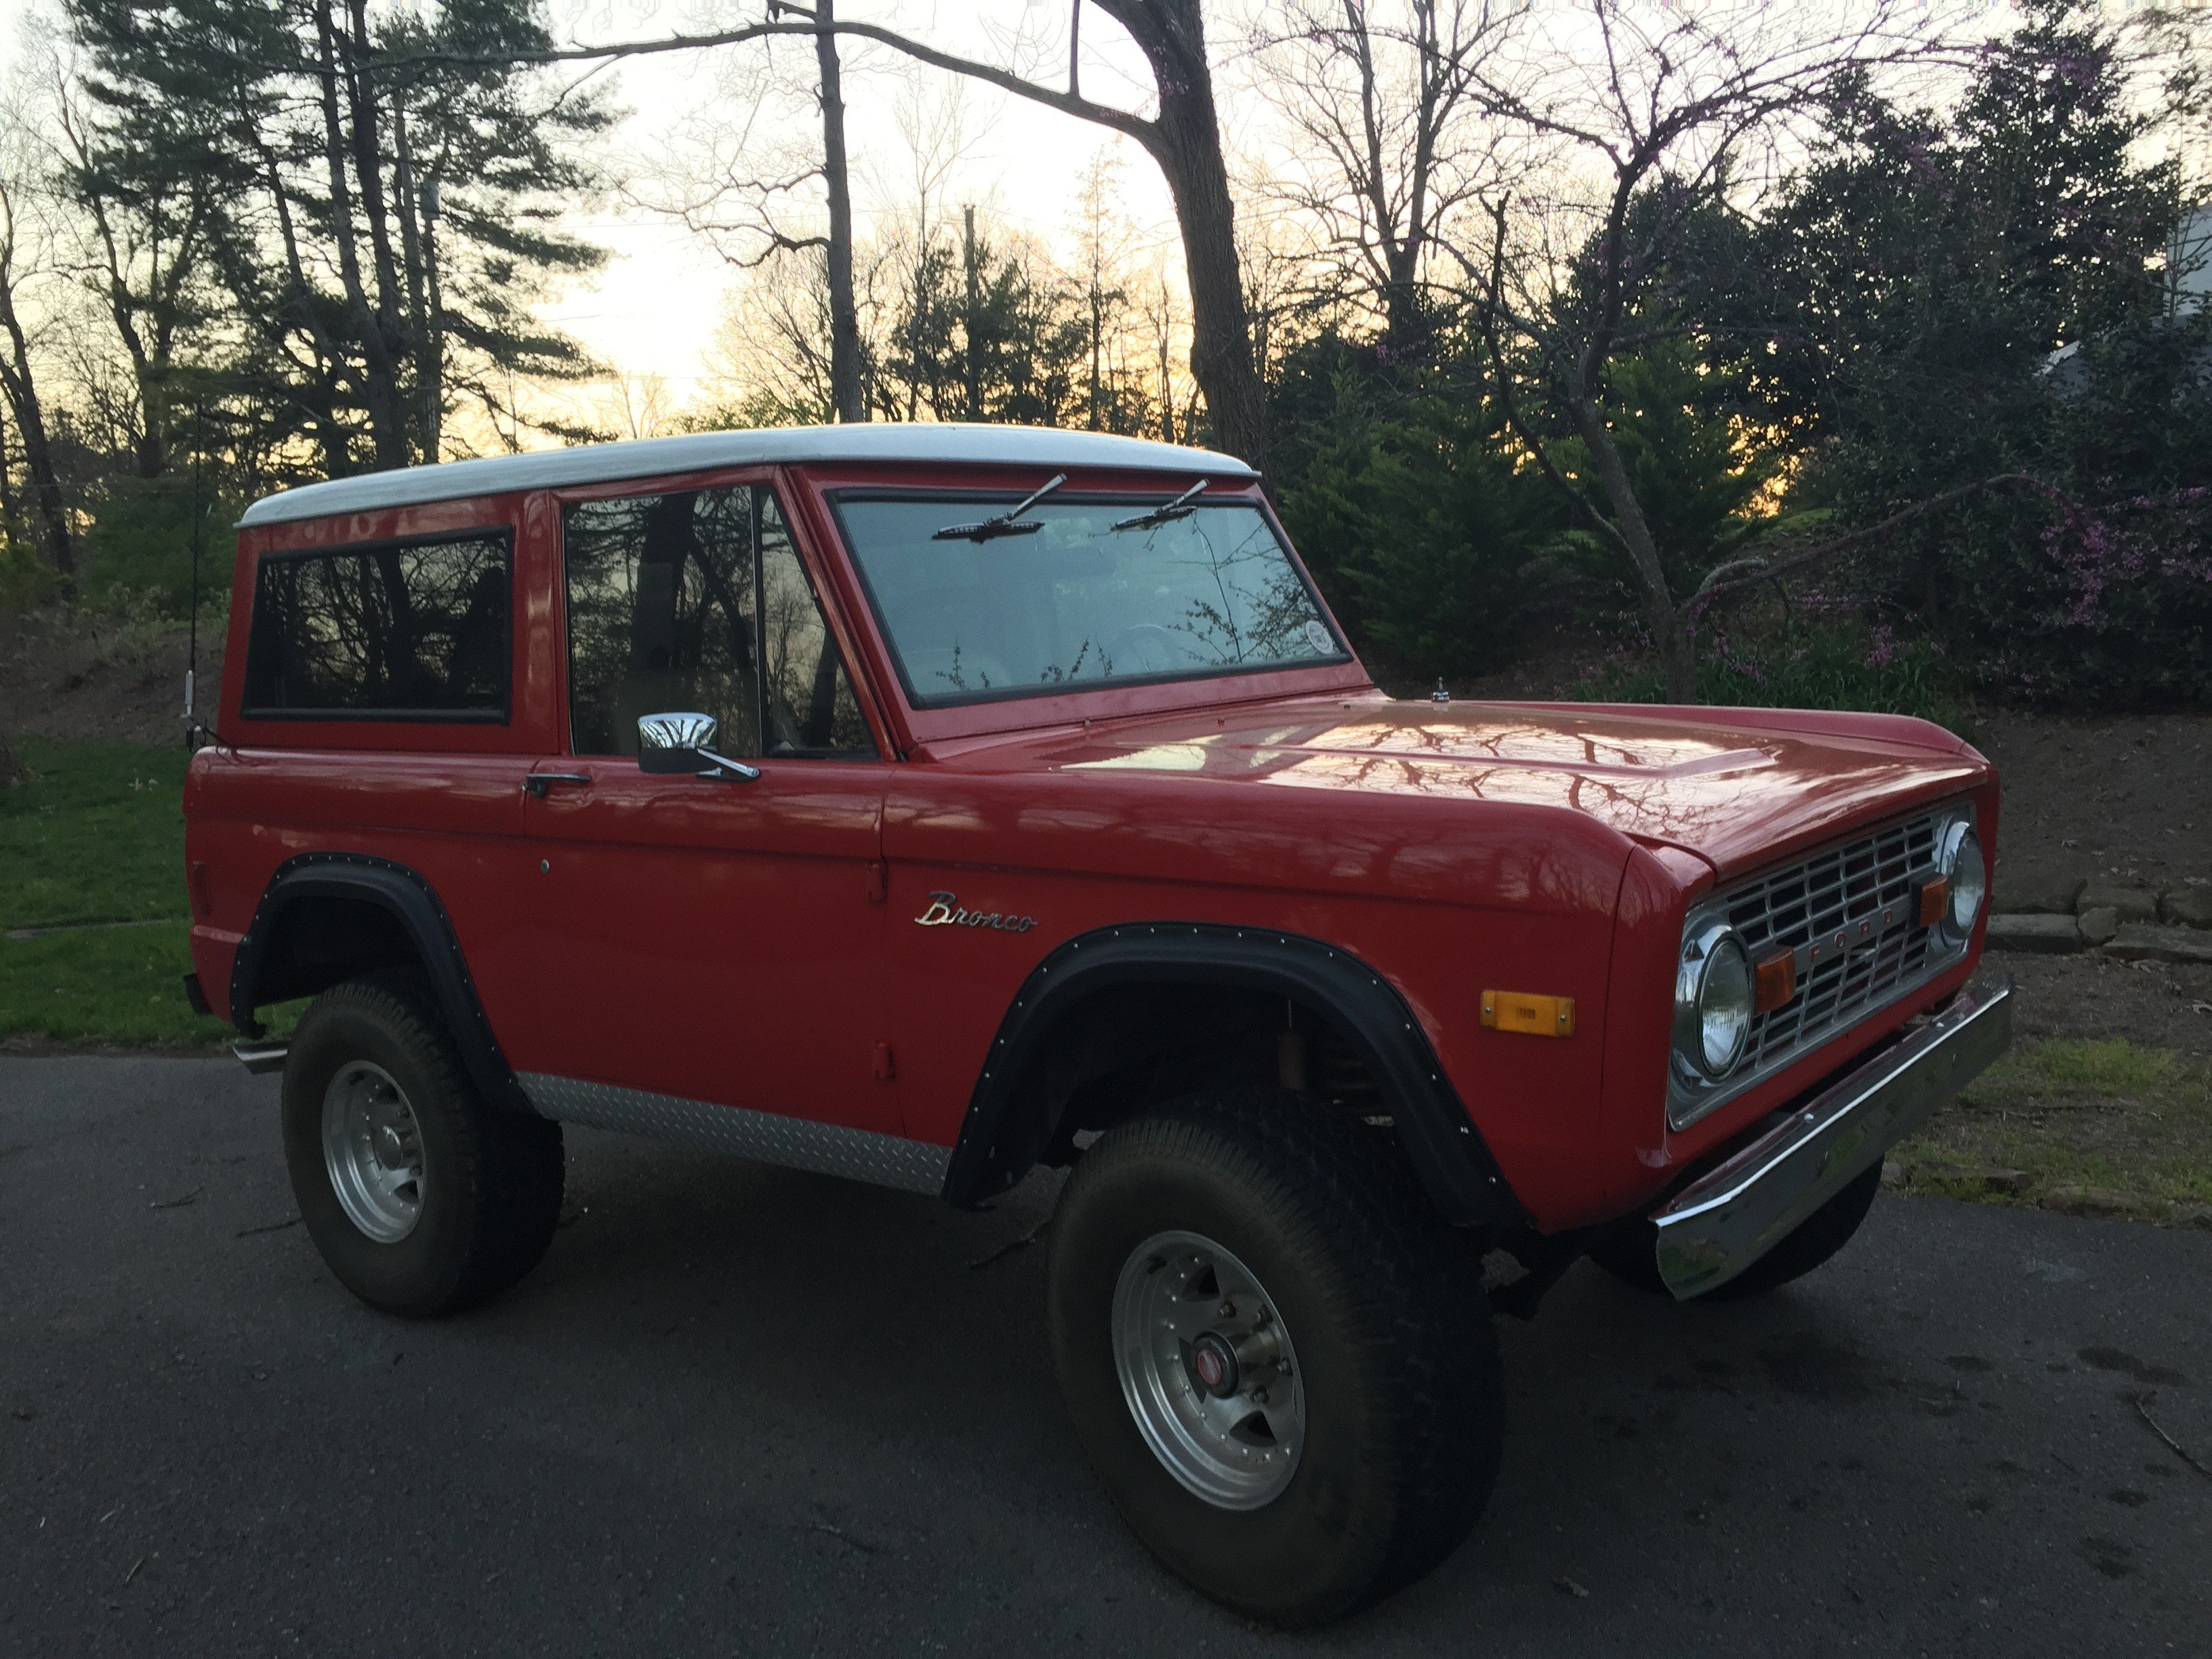 1977 Ford Bronco for sale 100860292 & Ford Bronco Classics for Sale - Classics on Autotrader markmcfarlin.com